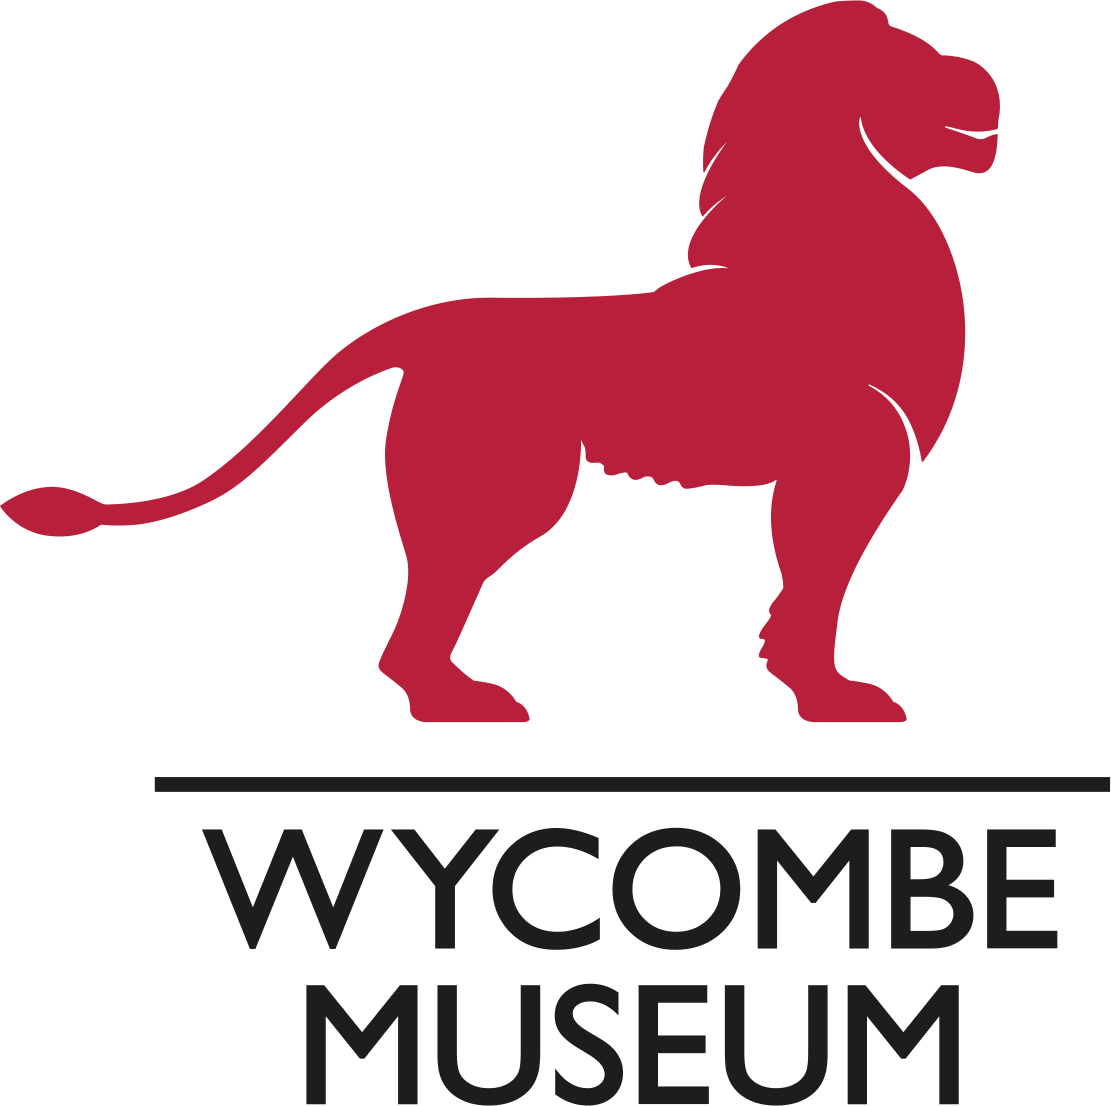 Wycombe Museum